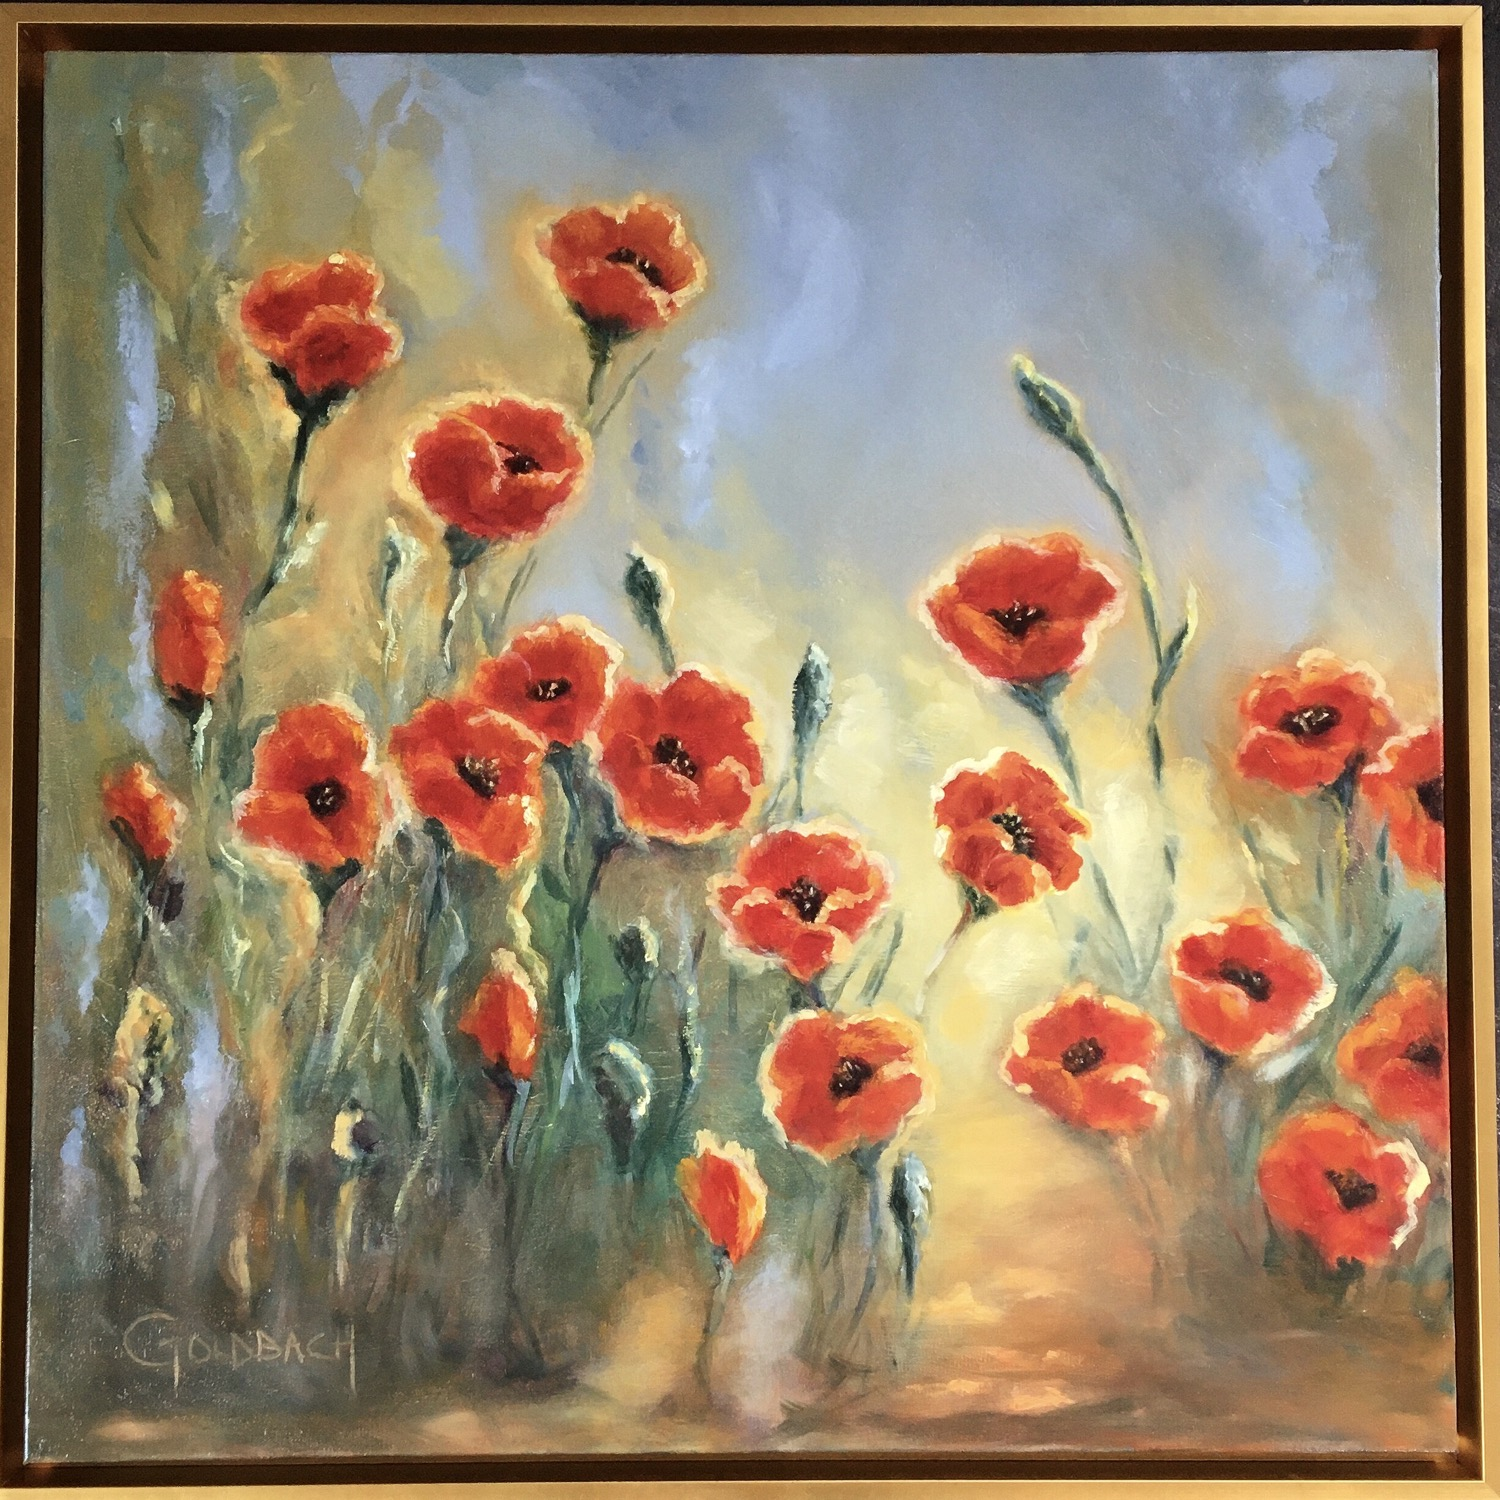 Dance of the Poppies